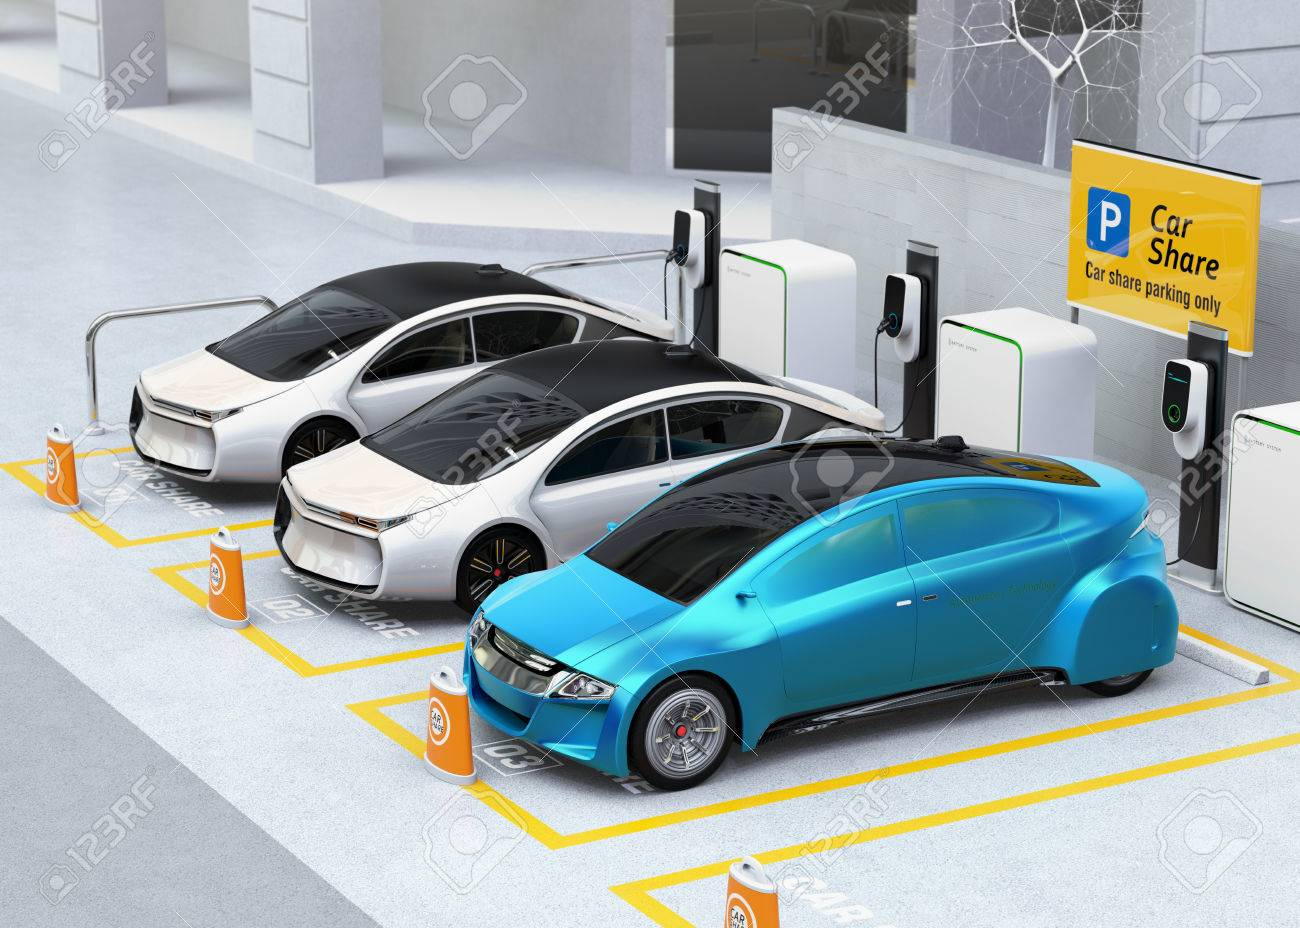 Autonomous vehicles in parking lot for sharing. Car sharing business concept. 3D rendering image. - 78084145